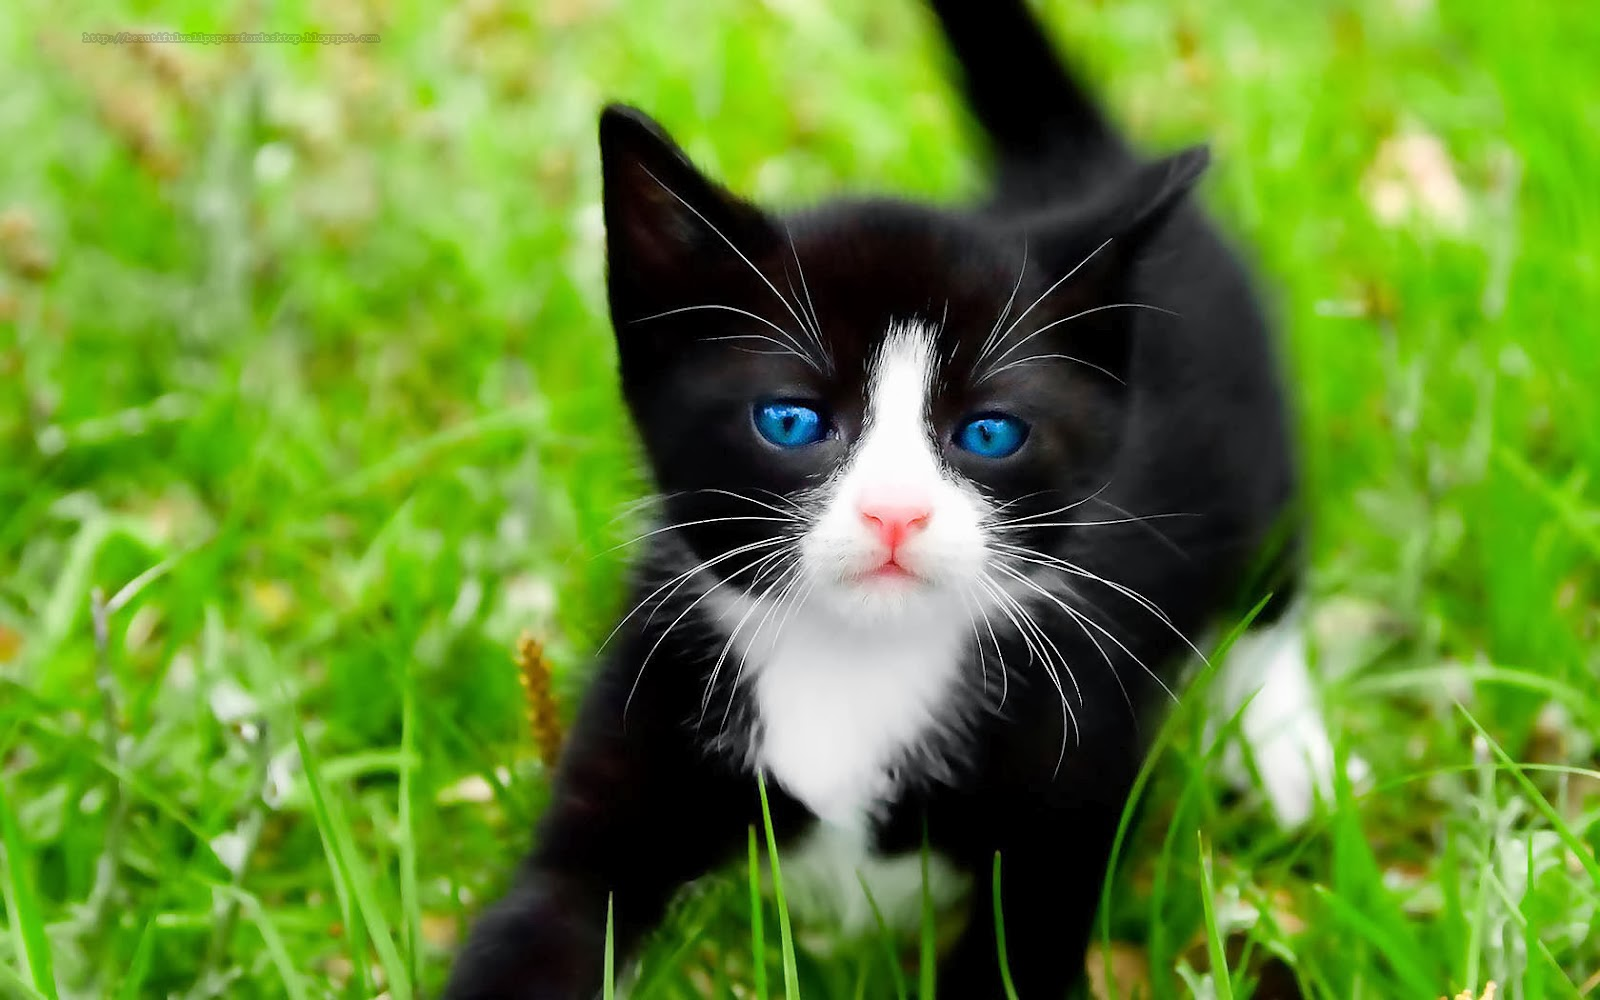 Cute Cat Wallpapers Hd 1 The Cats Meow